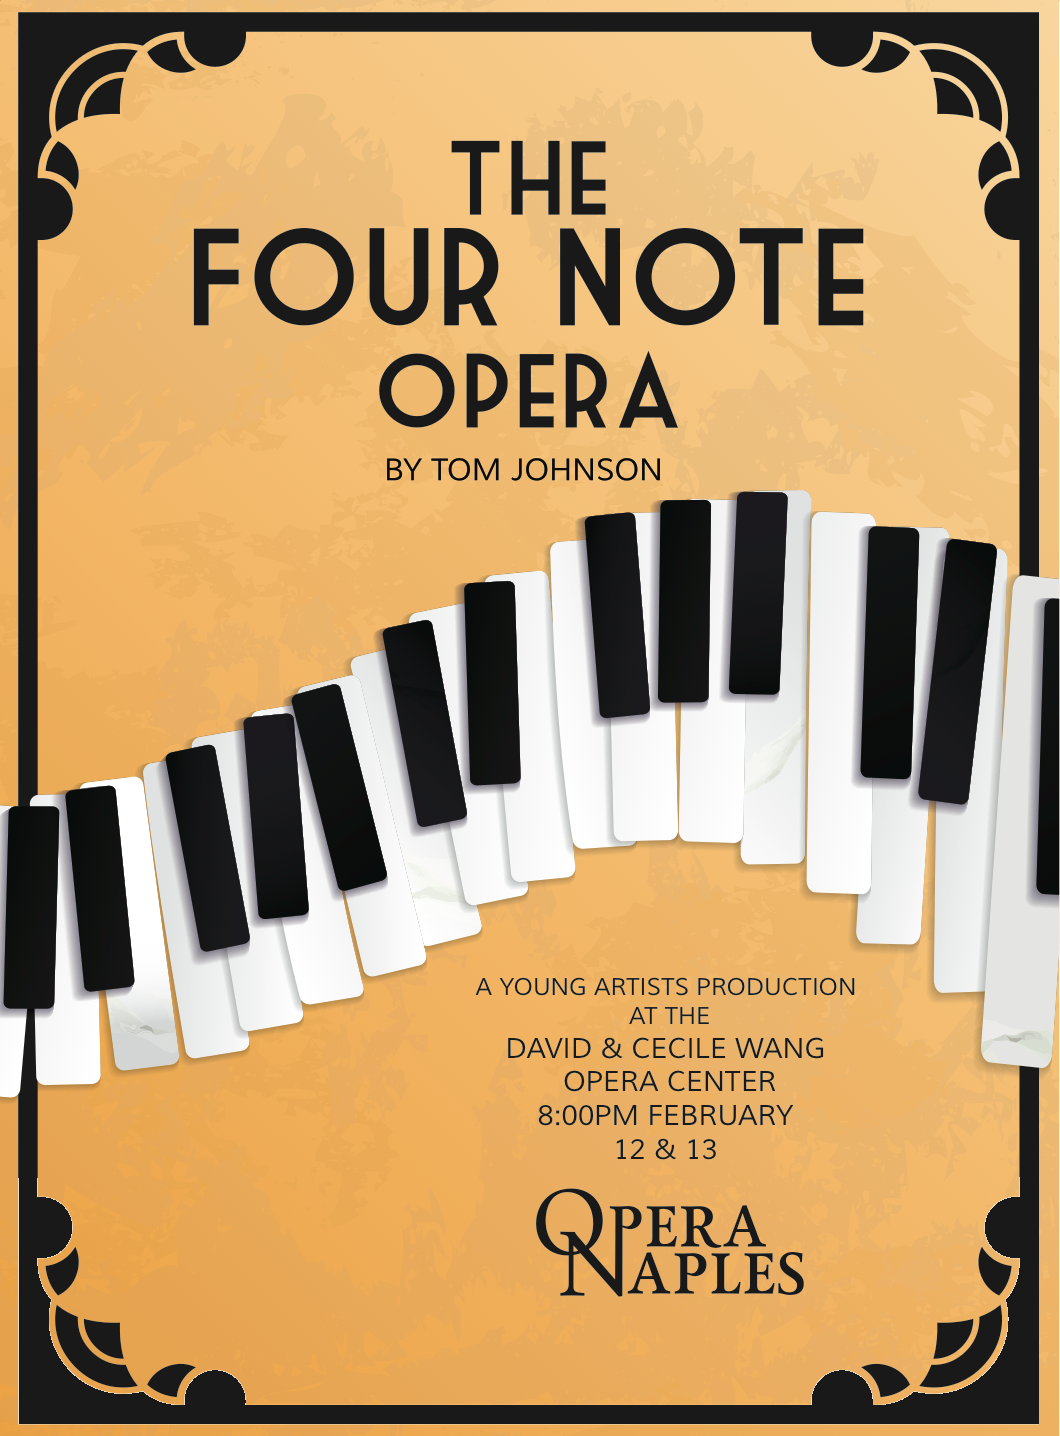 The Four Note Opera